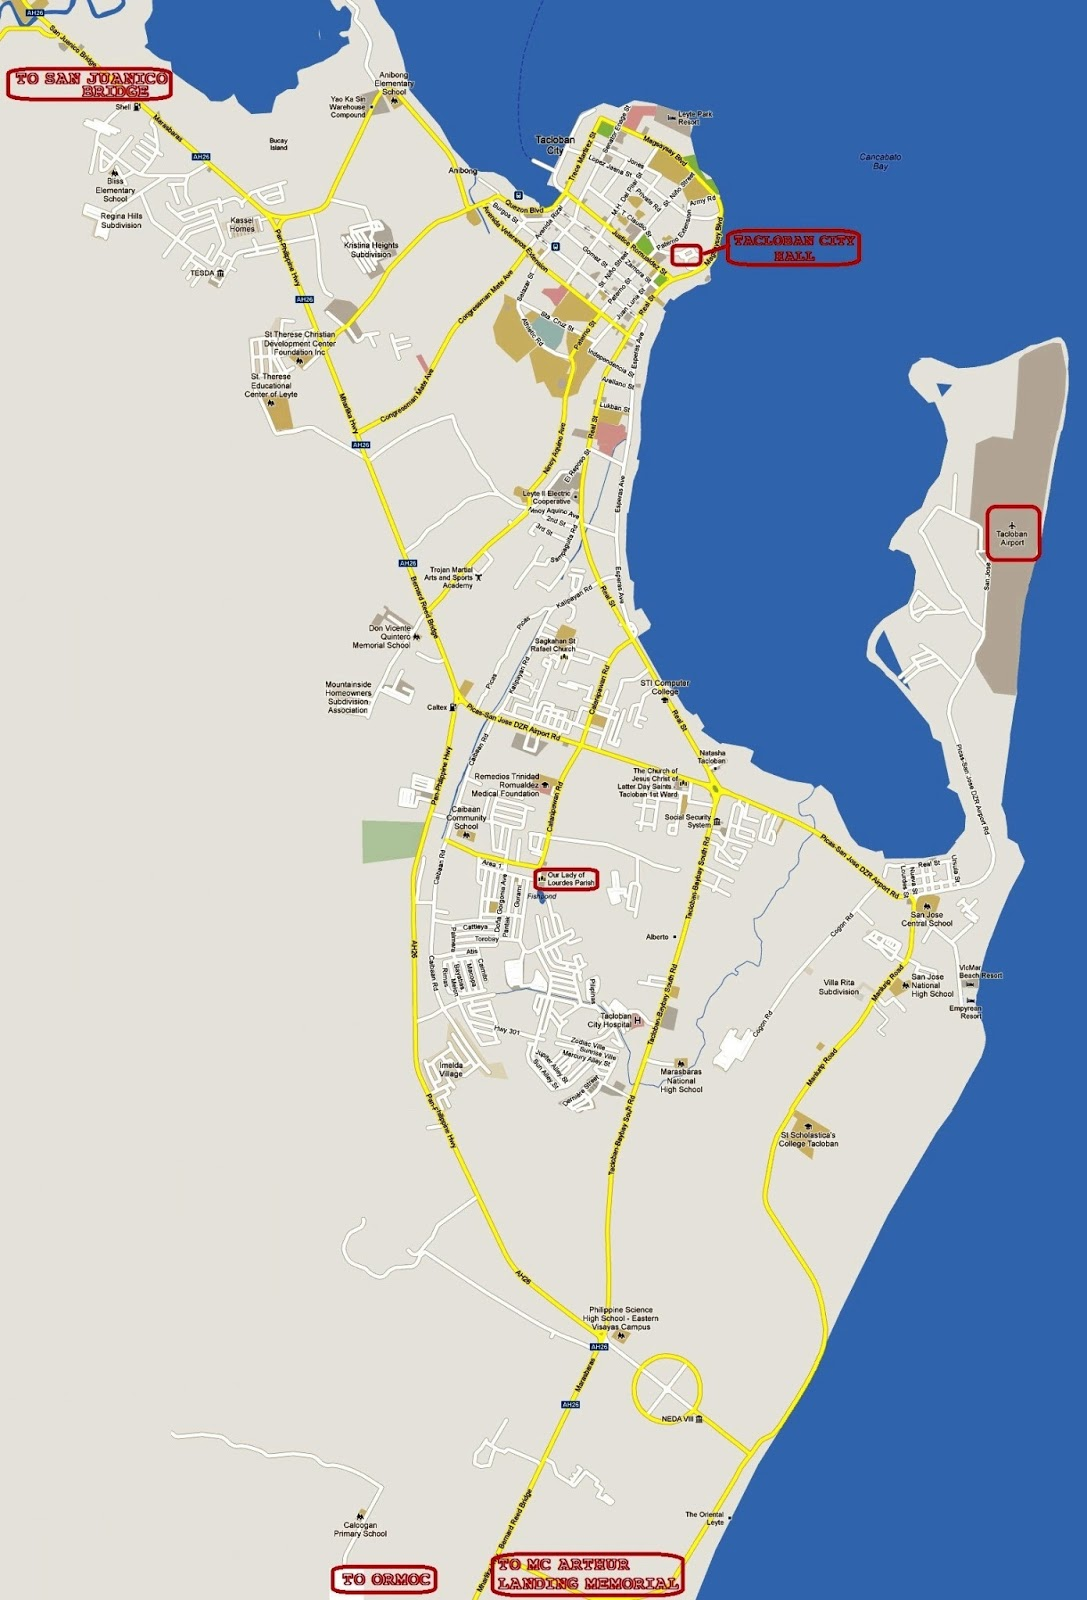 tacloban city, tacloban map, tacloban city map, map tacloban city, map san juanico bridge, san juanico bridge map, around tacloban, what to do in tacloban, where to go in tacloban